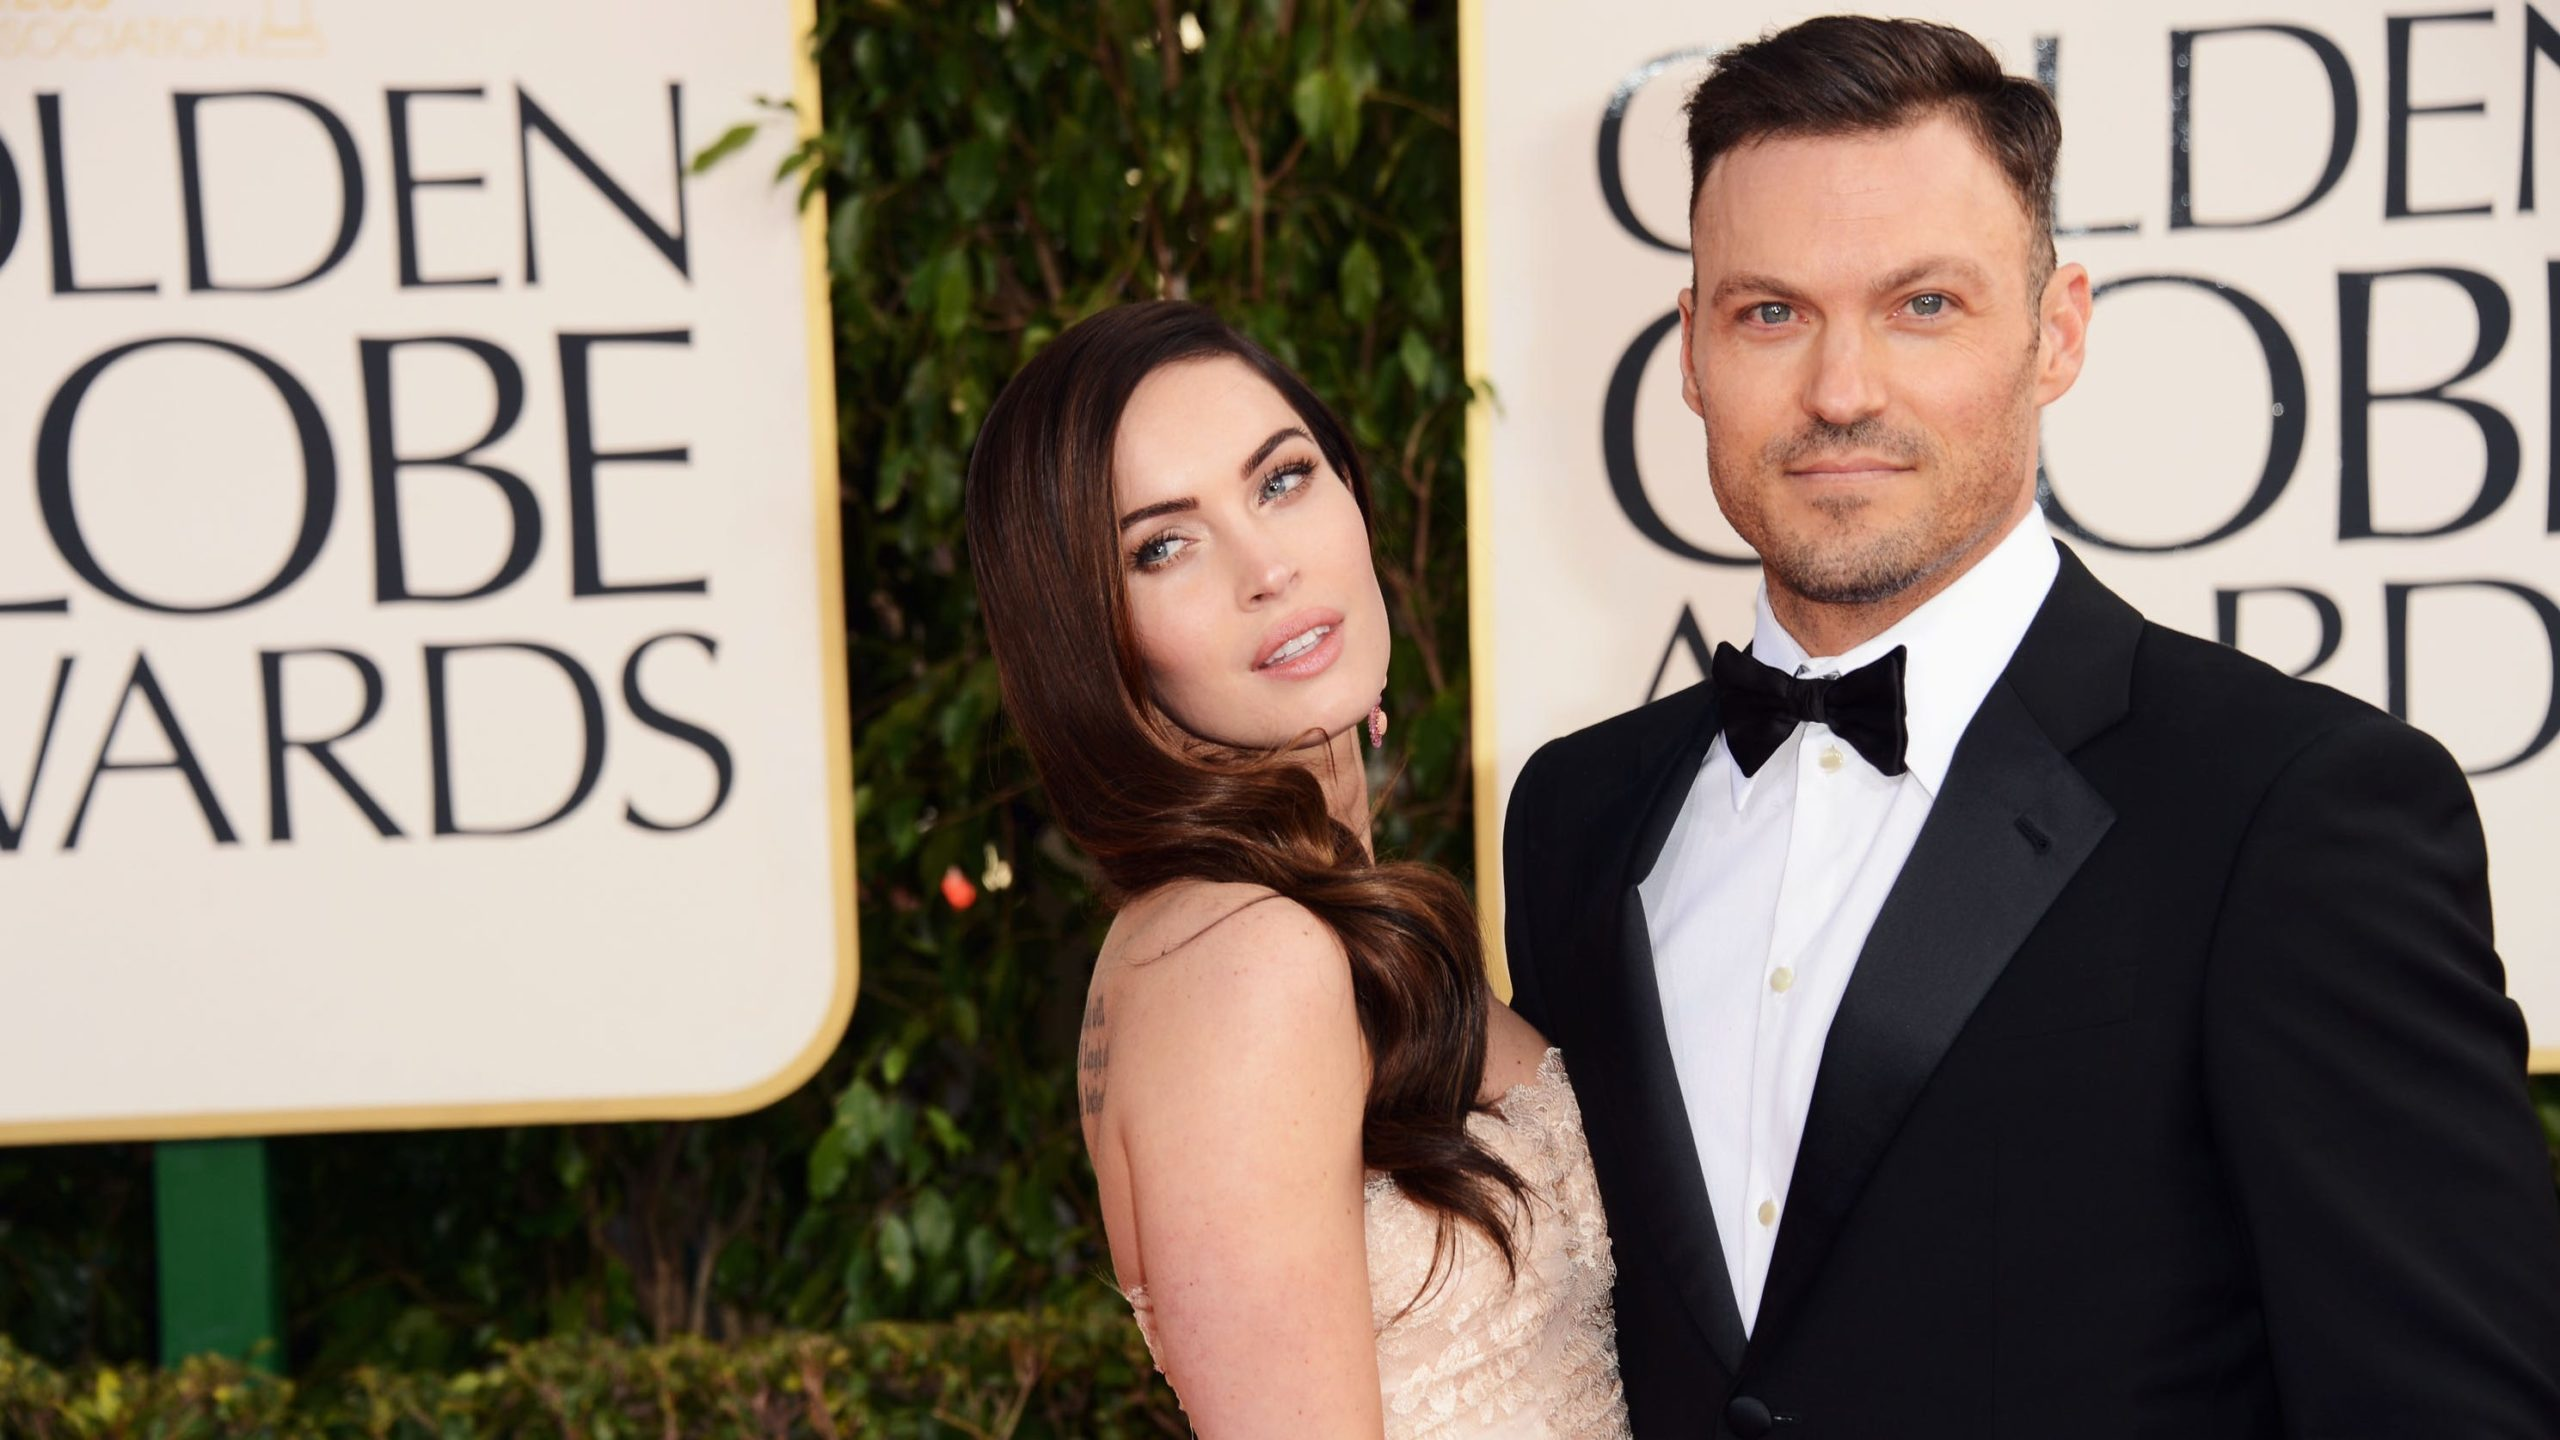 Dancing With The Stars Brian Austin Green Support From Ex Vanessa Marcil! DWTS